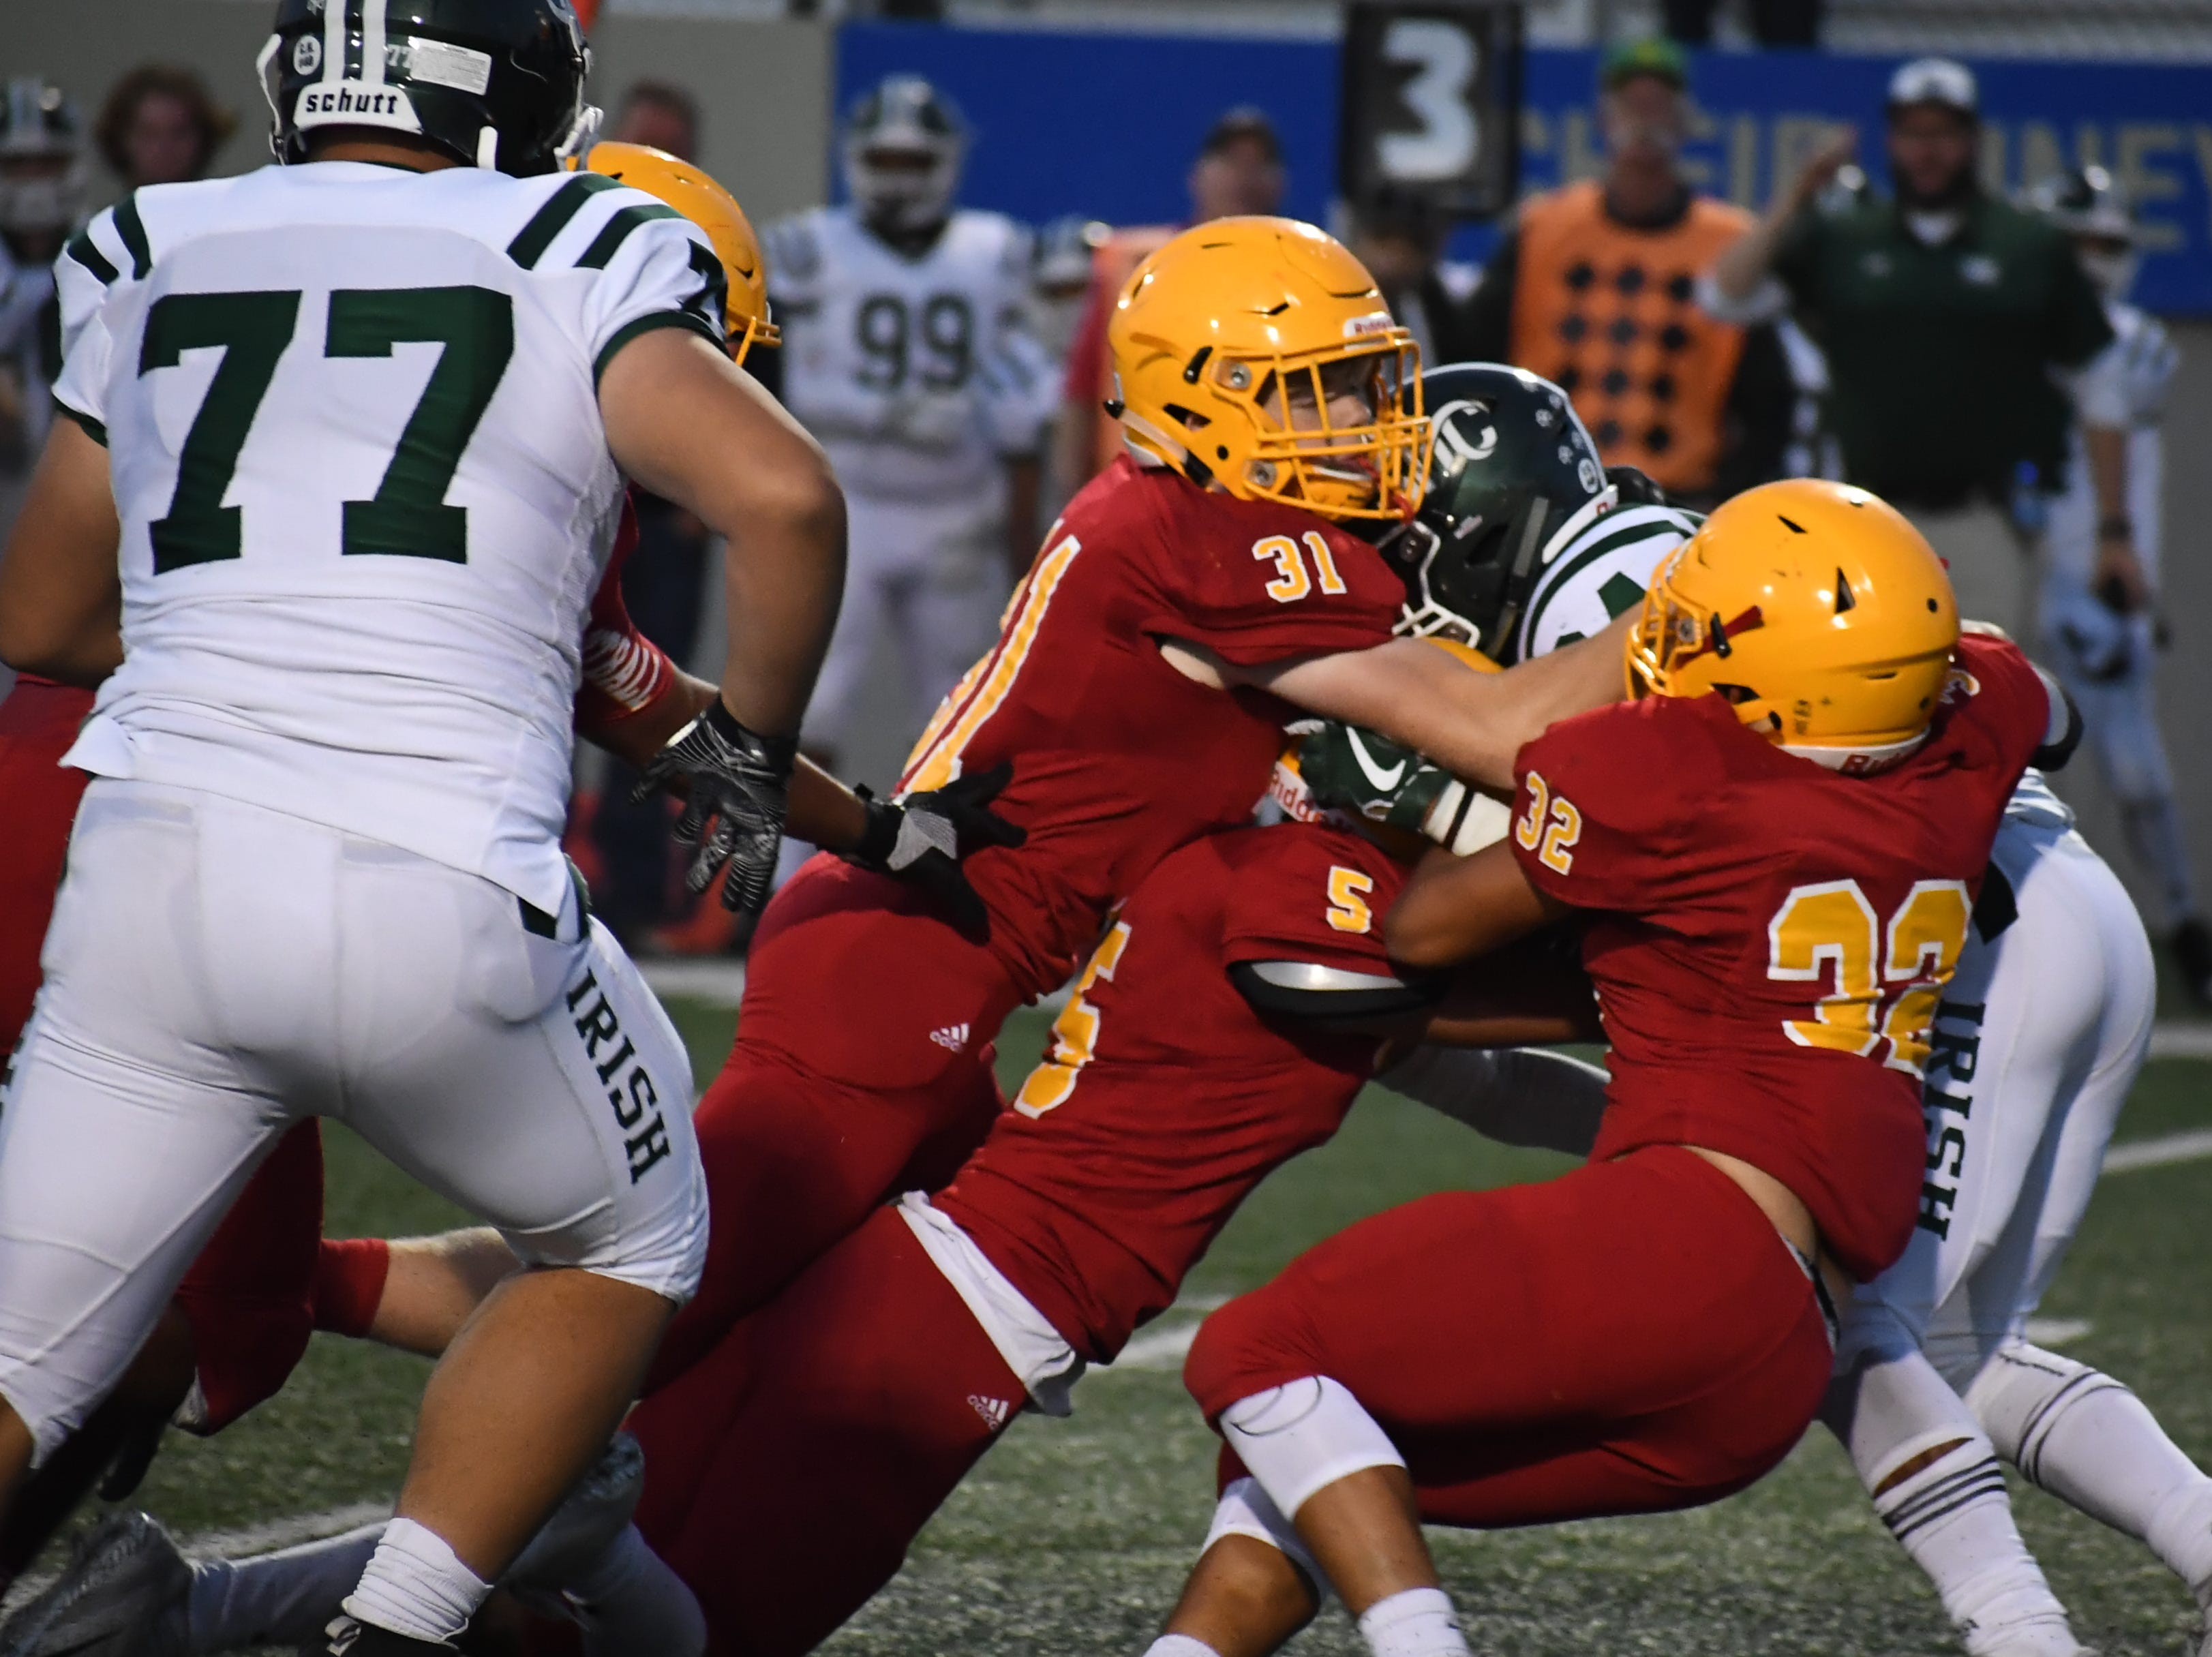 Palma junior Brent Eastman (31) and seniors Matt Morales (5) and Diego Guajardo (32) take down a Sacred Heart Cathedral running back.